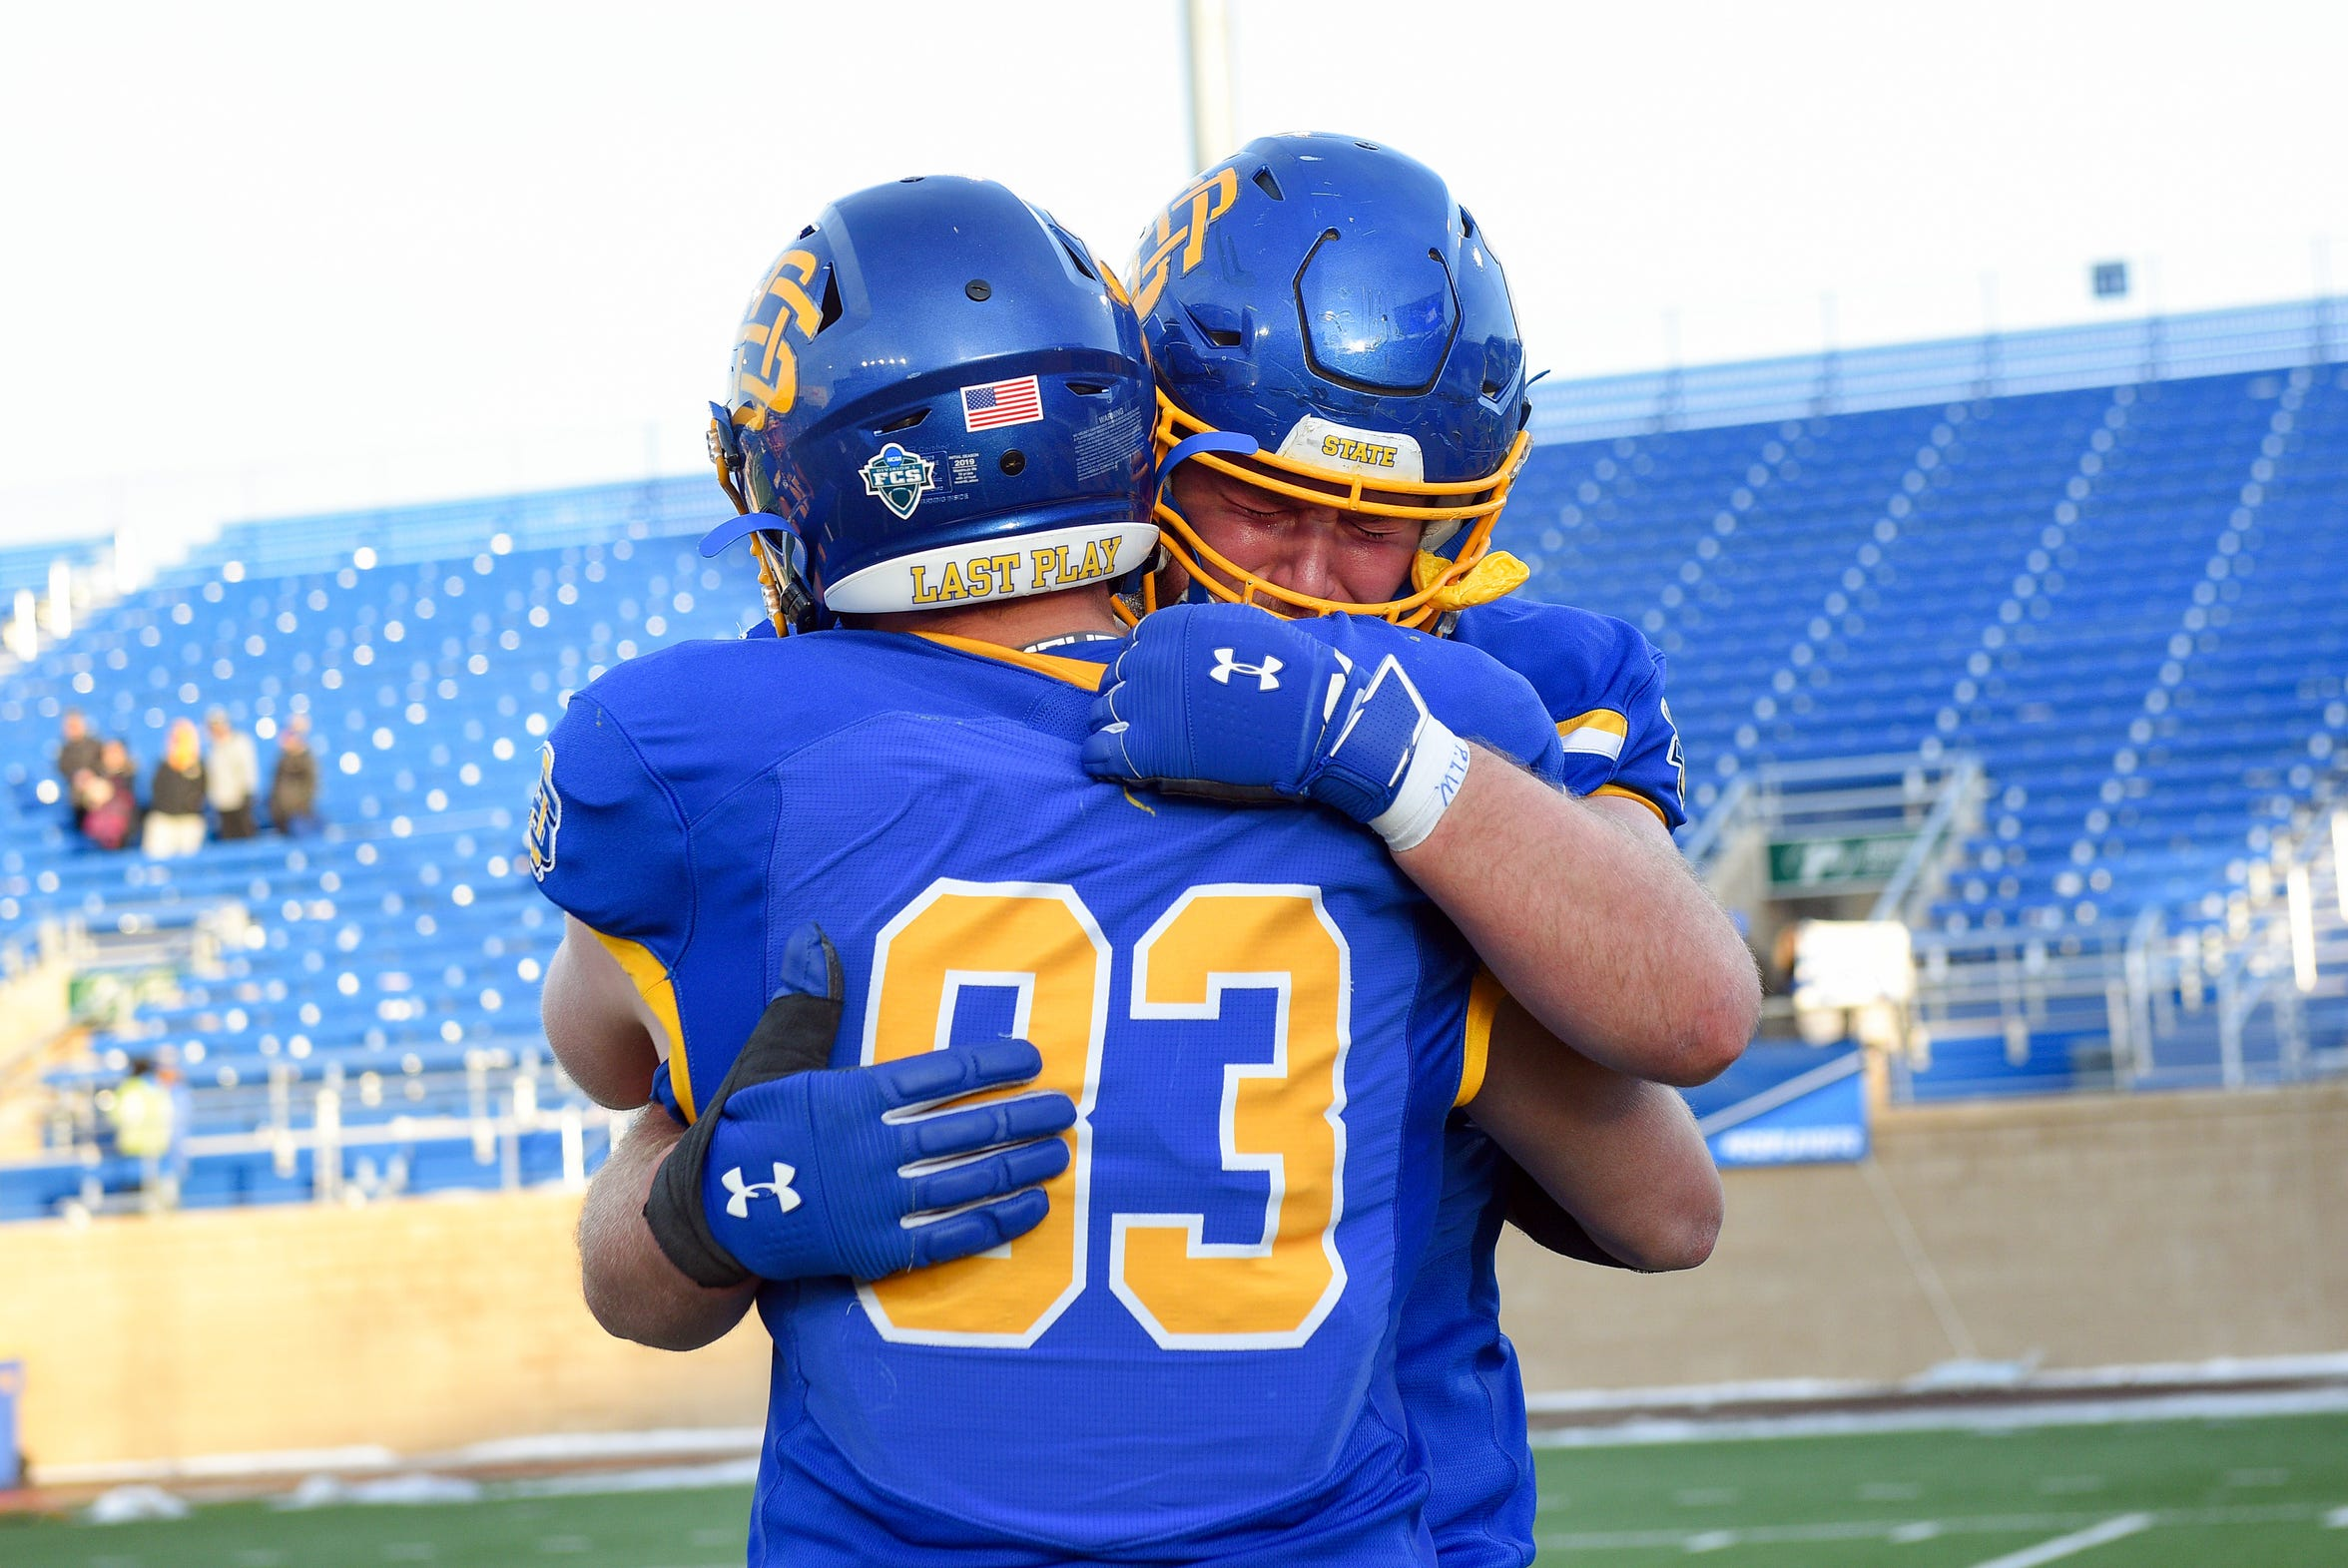 SDSU players cry into each other's shoulders after losing a playoff game on Saturday, Dec. 7, 2019 at Dana J. Dykehouse Stadium in Brookings.